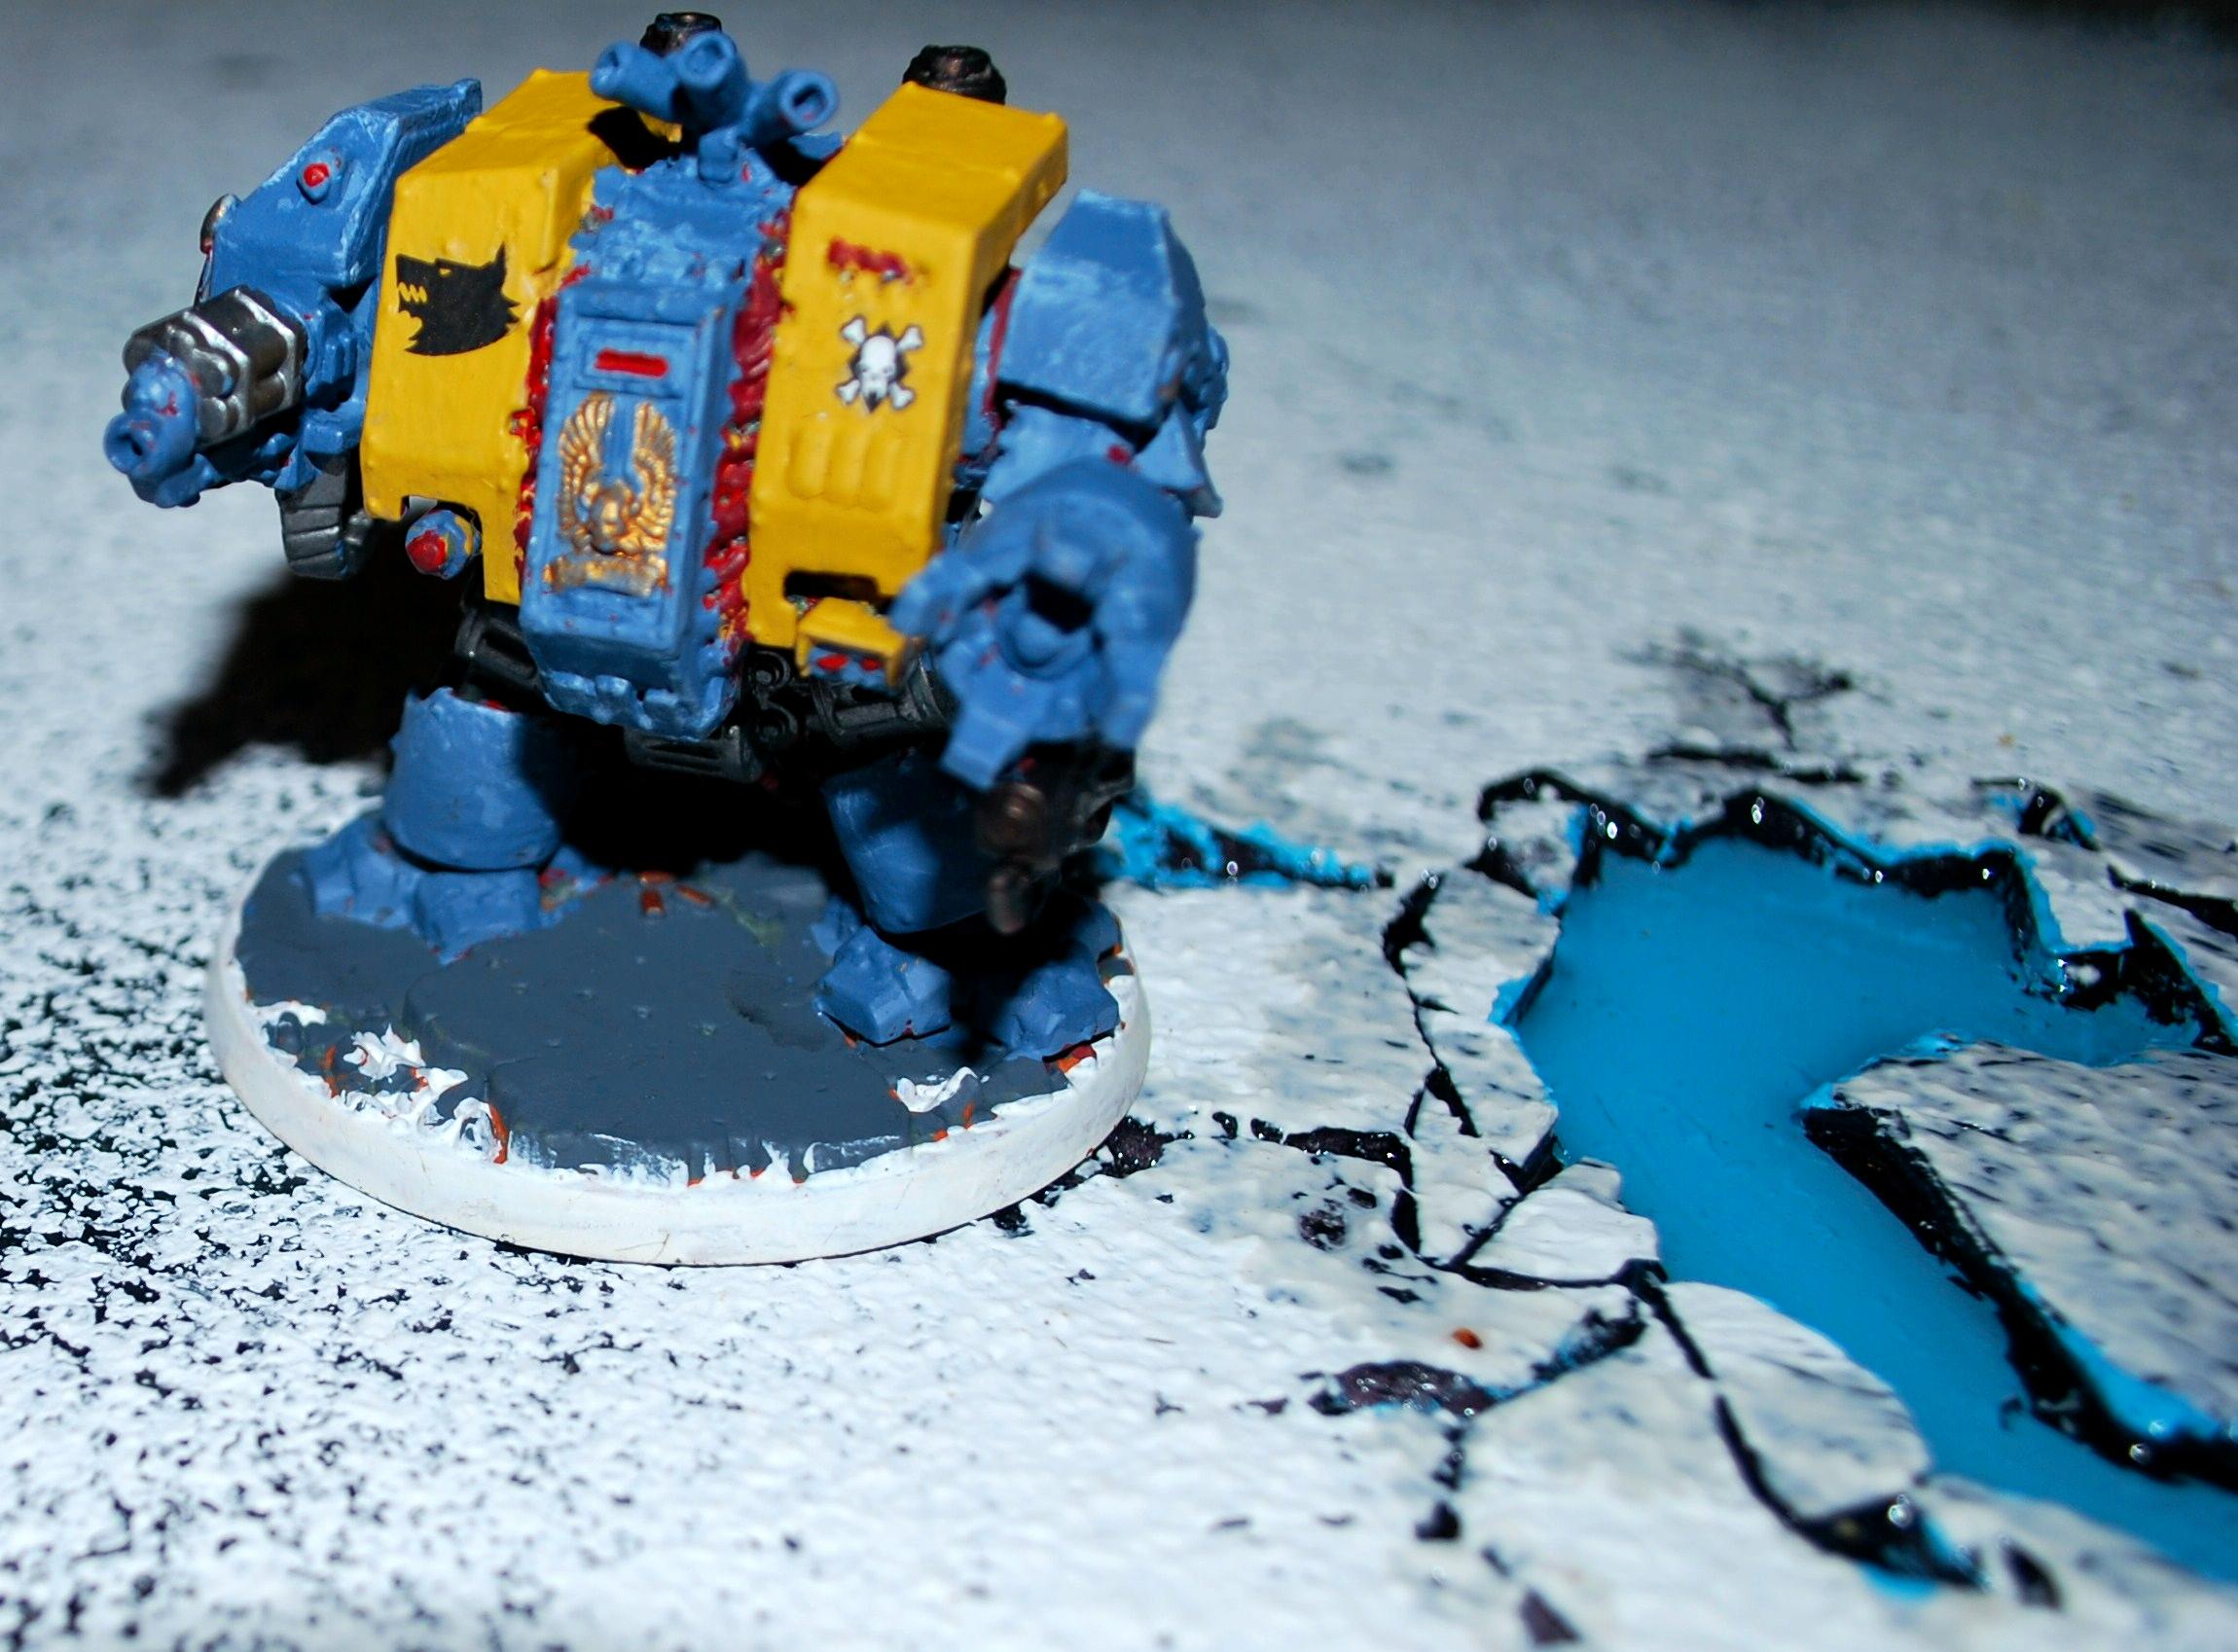 Dreadnought, Imperial, Space Marines, Space Wolves, Warhammer 40,000